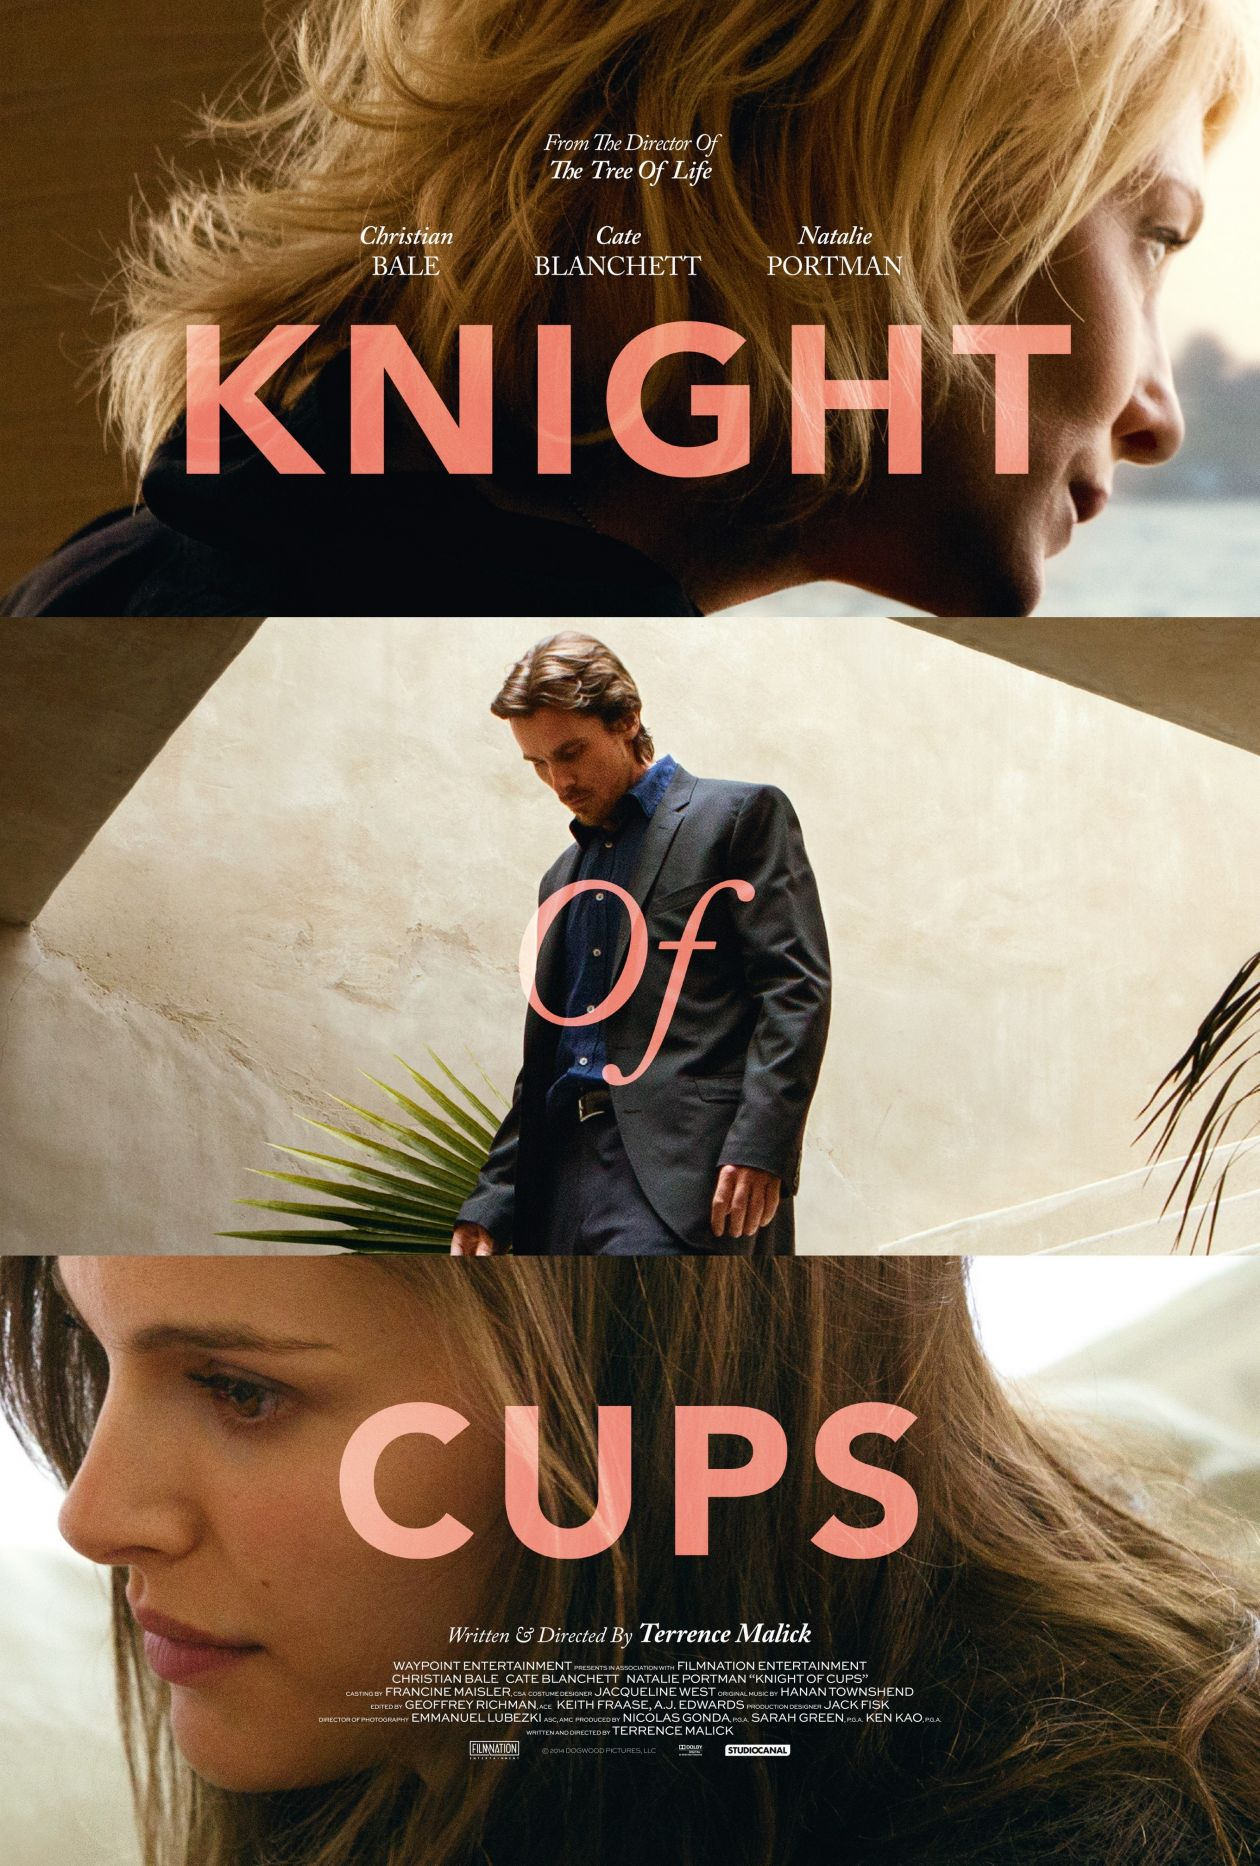 Cate Blanchett / Natalie Portman  Knight of Cups | Terrence Malick 2015 Movie Poster / Affiche du film